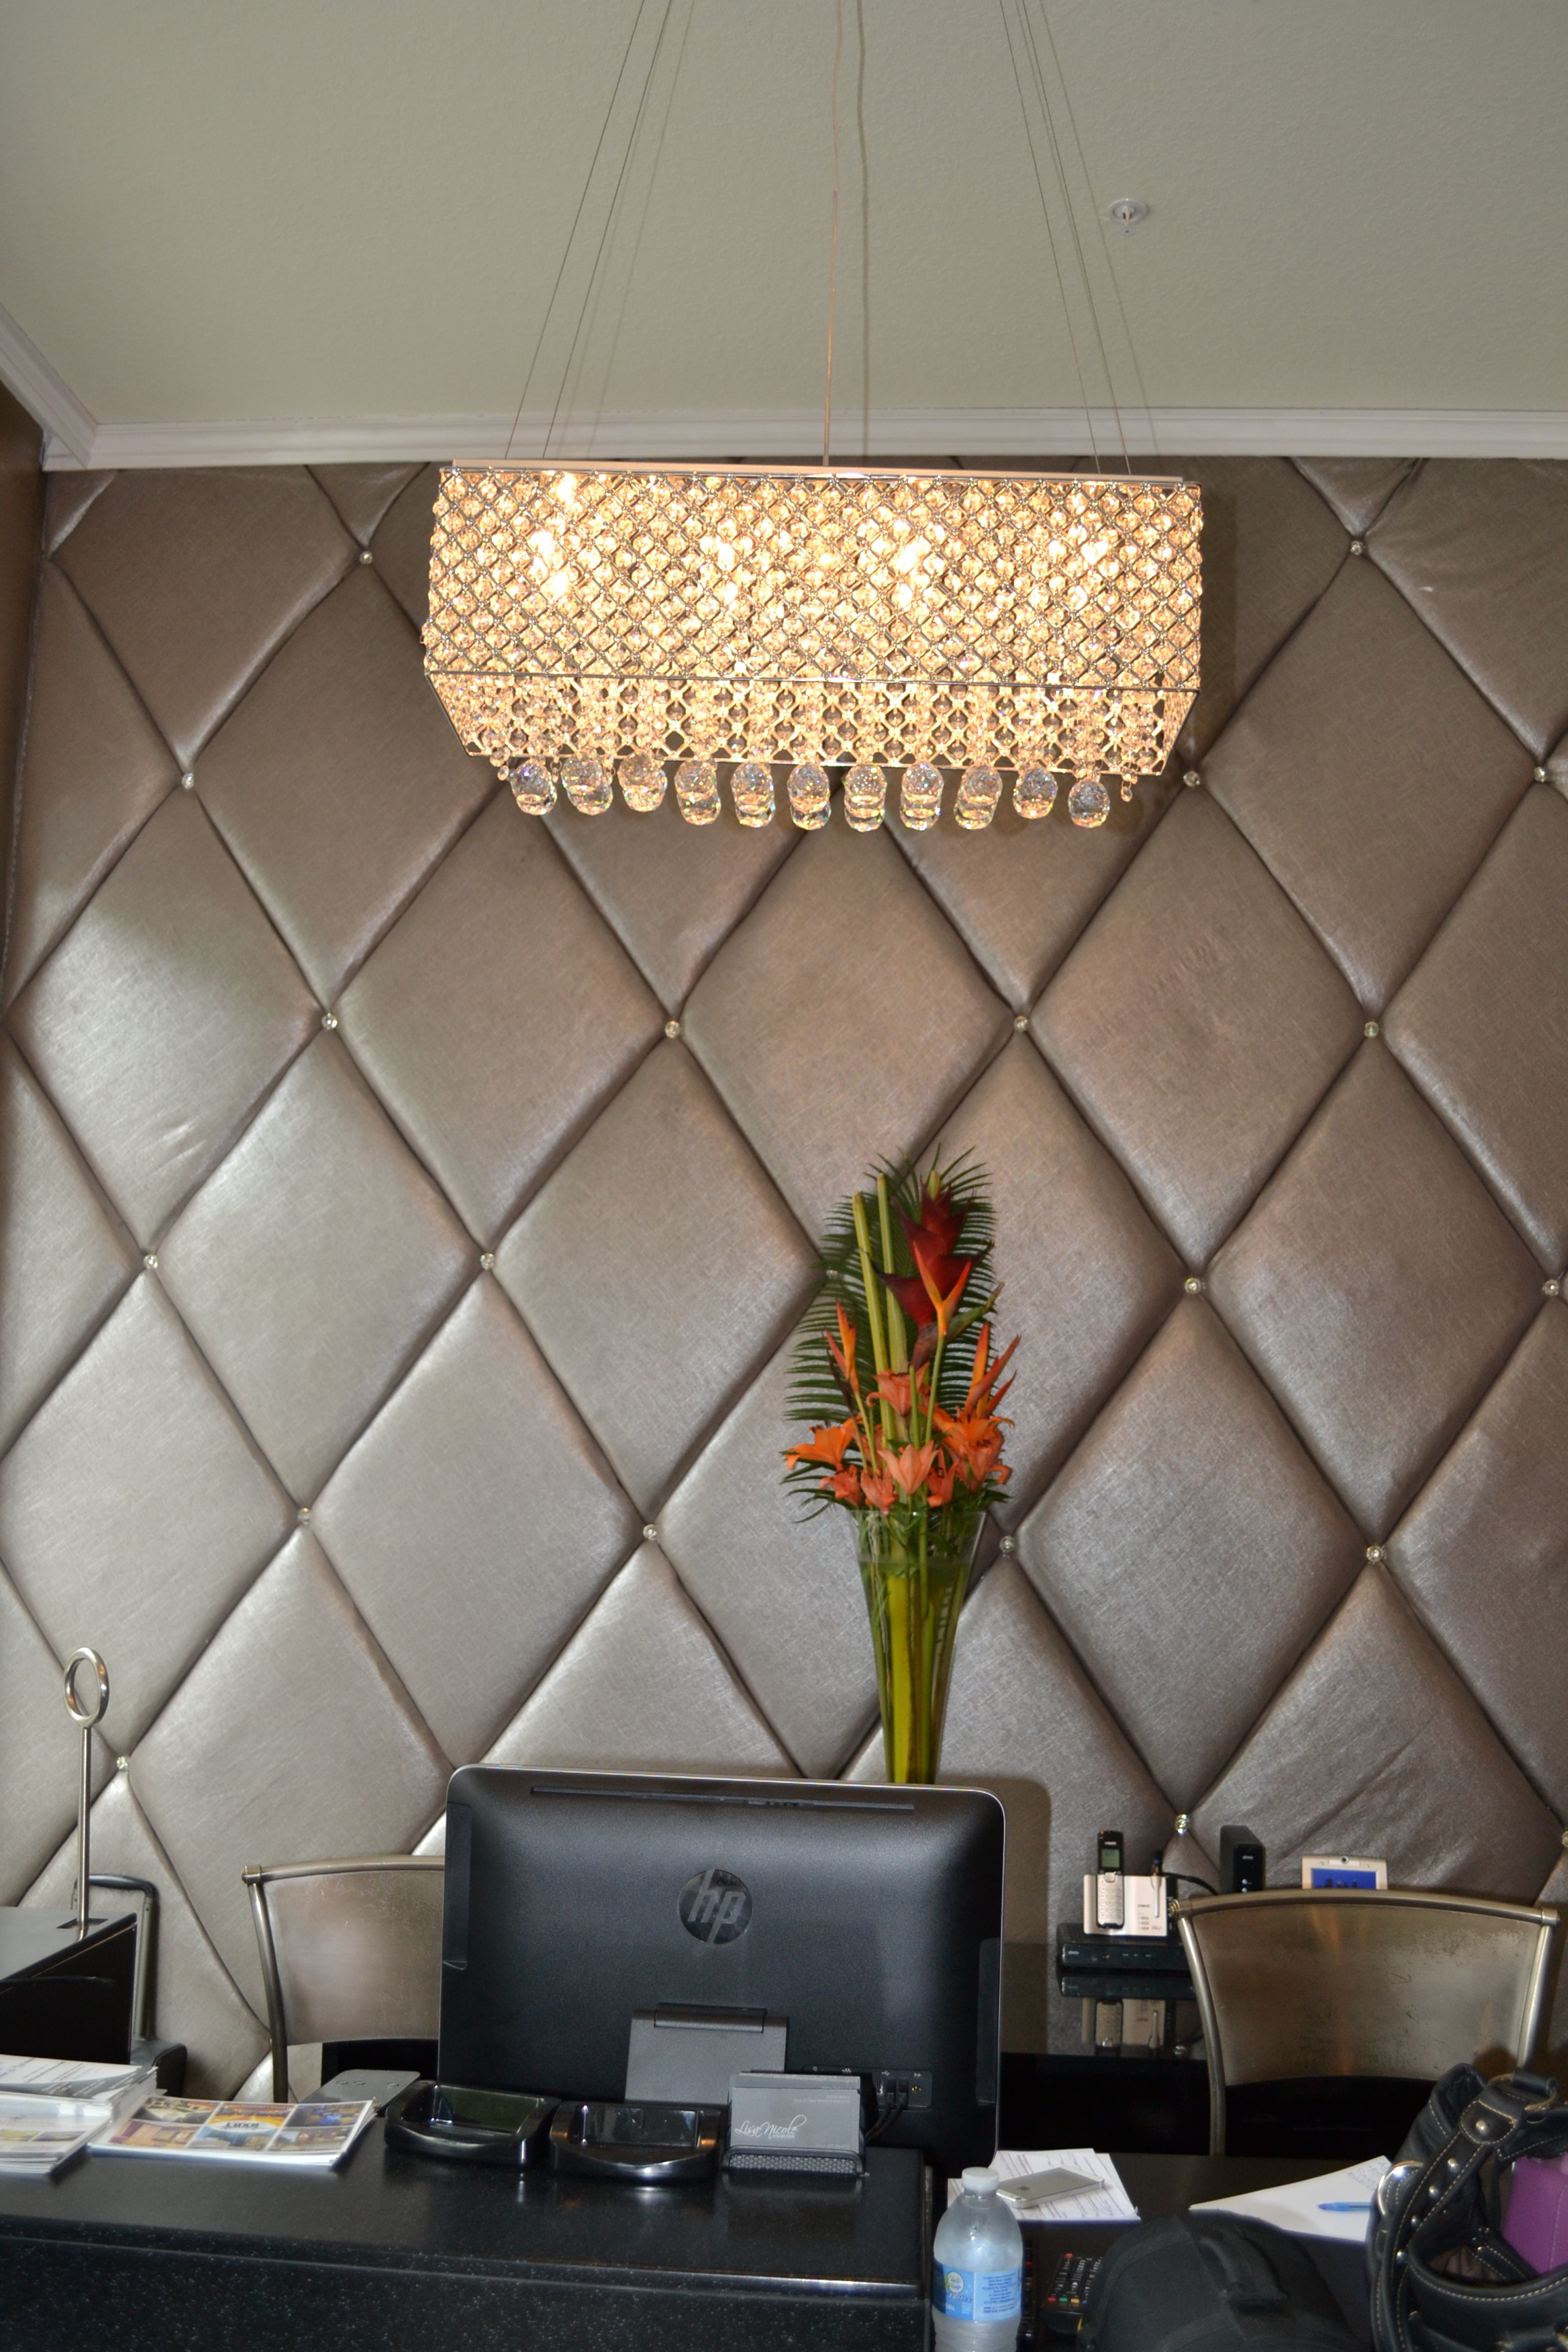 Custom diamond tufted wall treatment with Swarokvski crystals